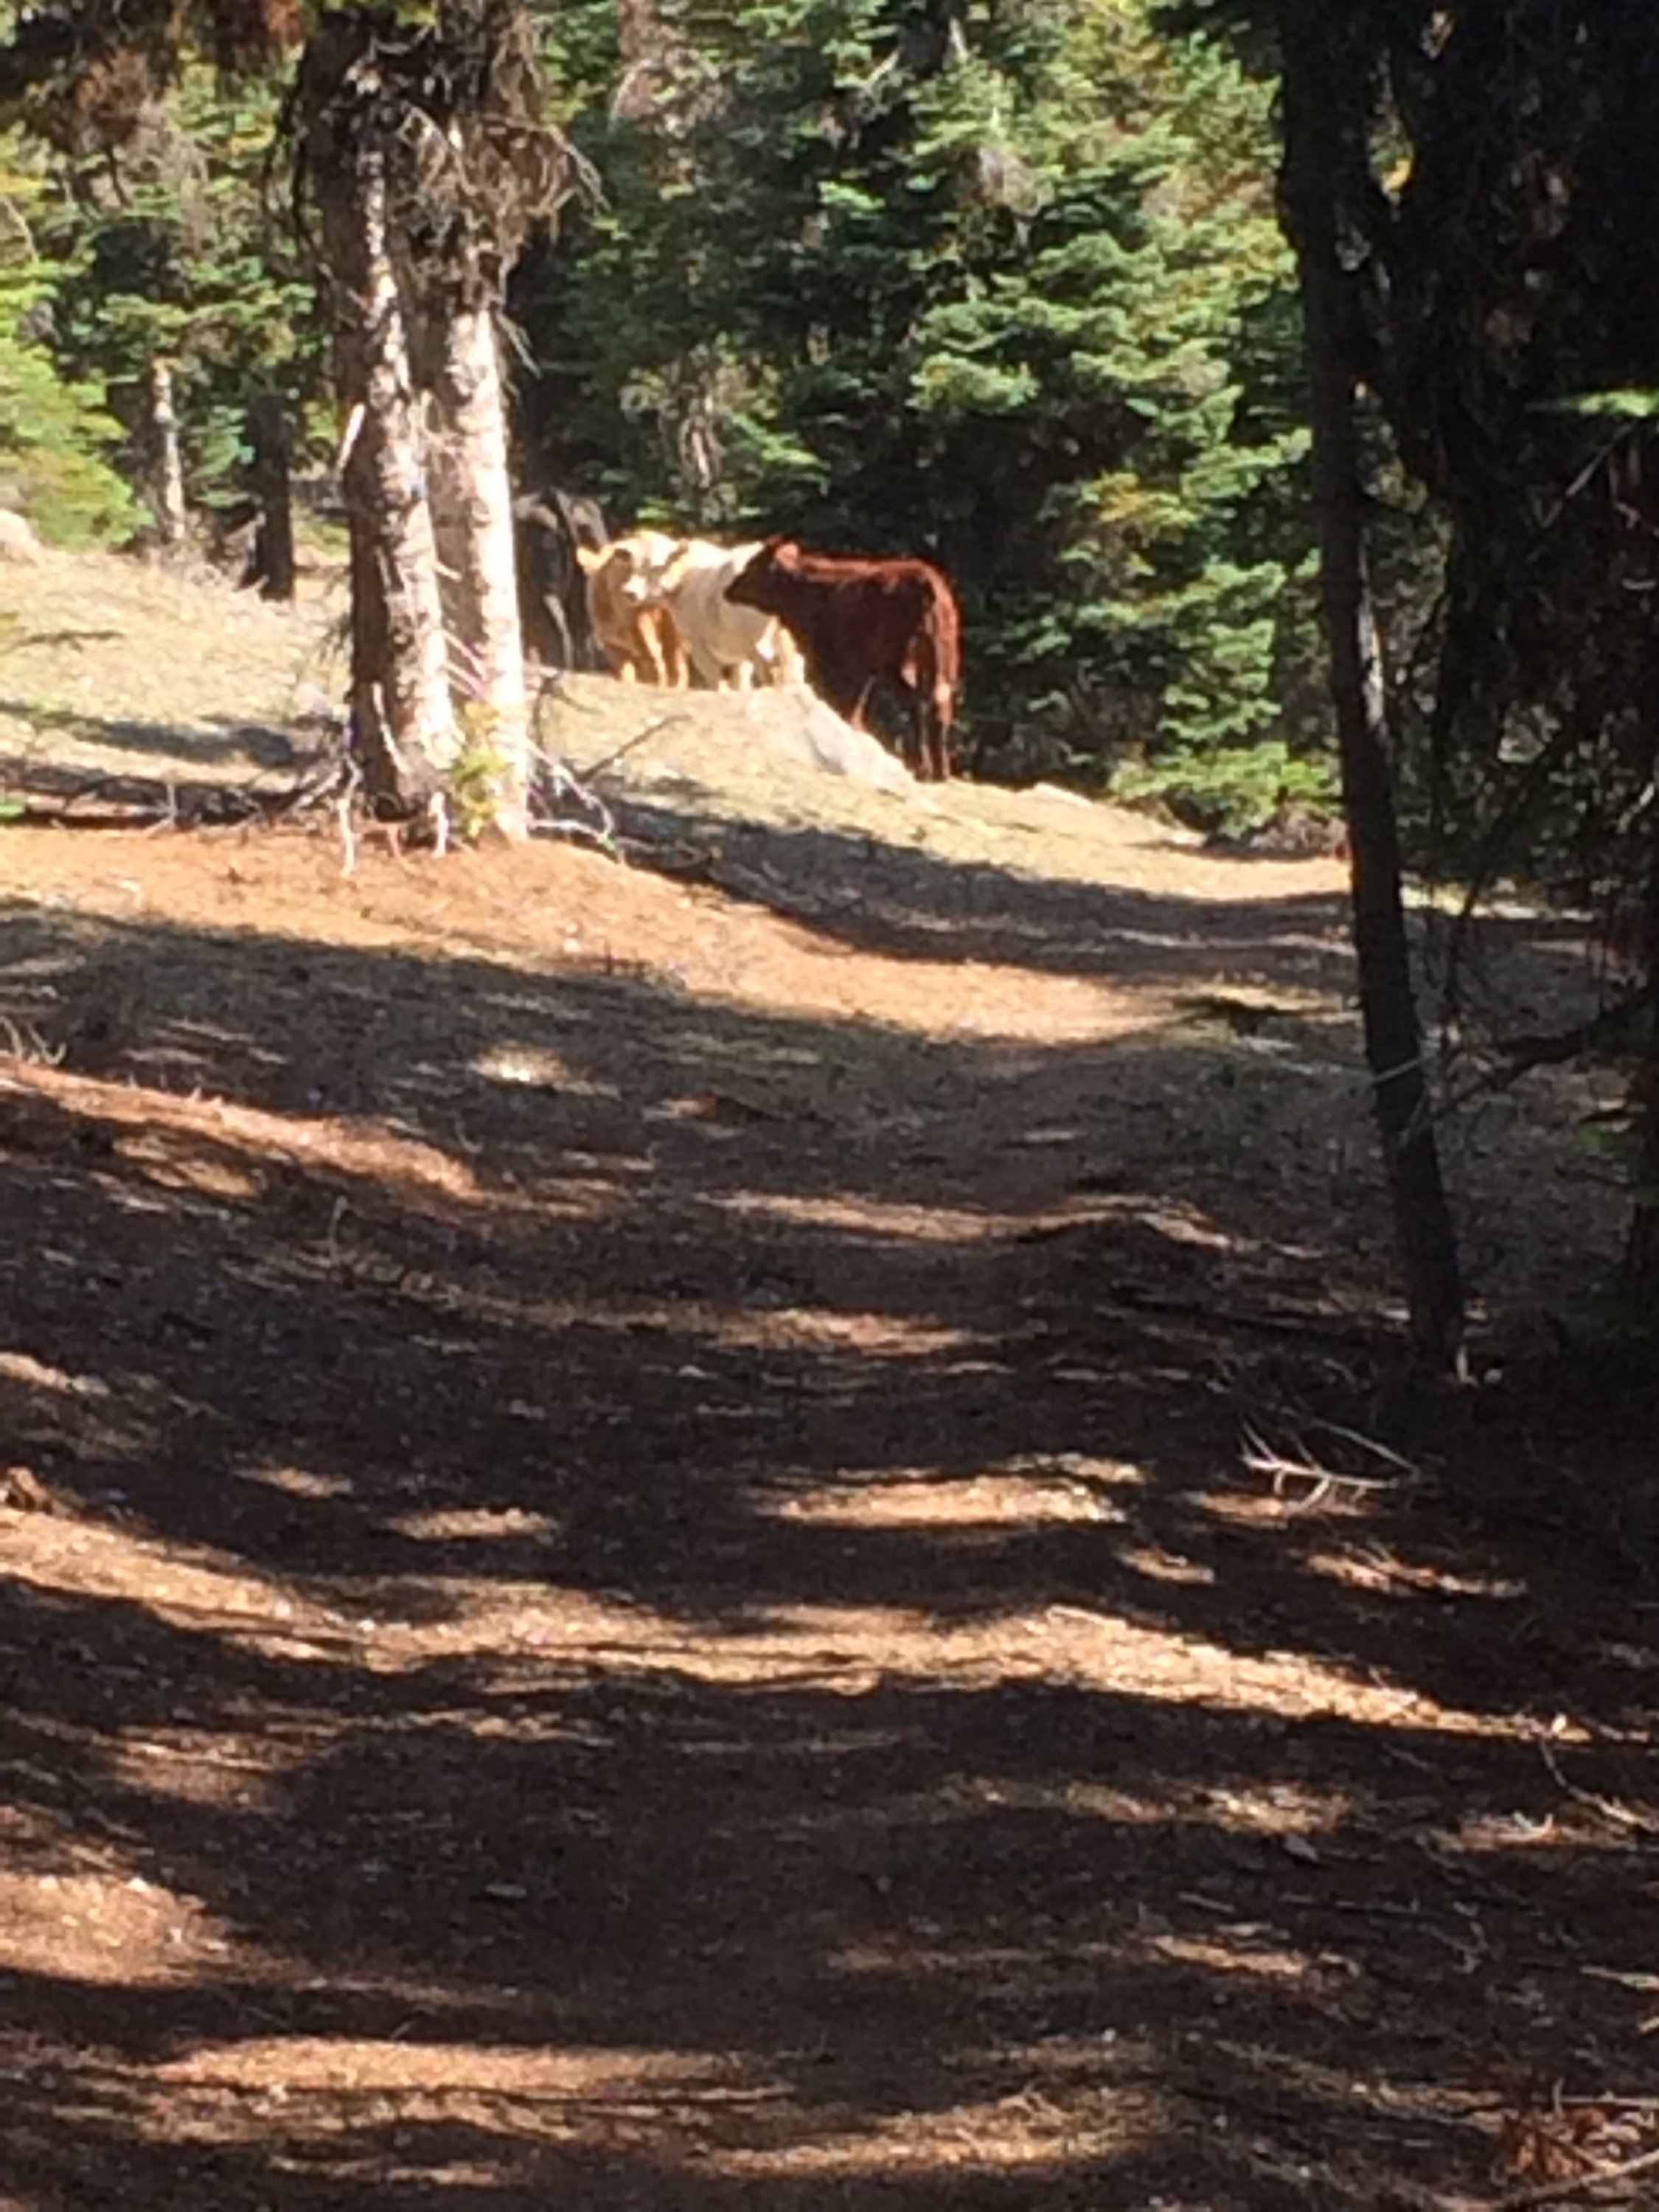 Cow herd on the trail.